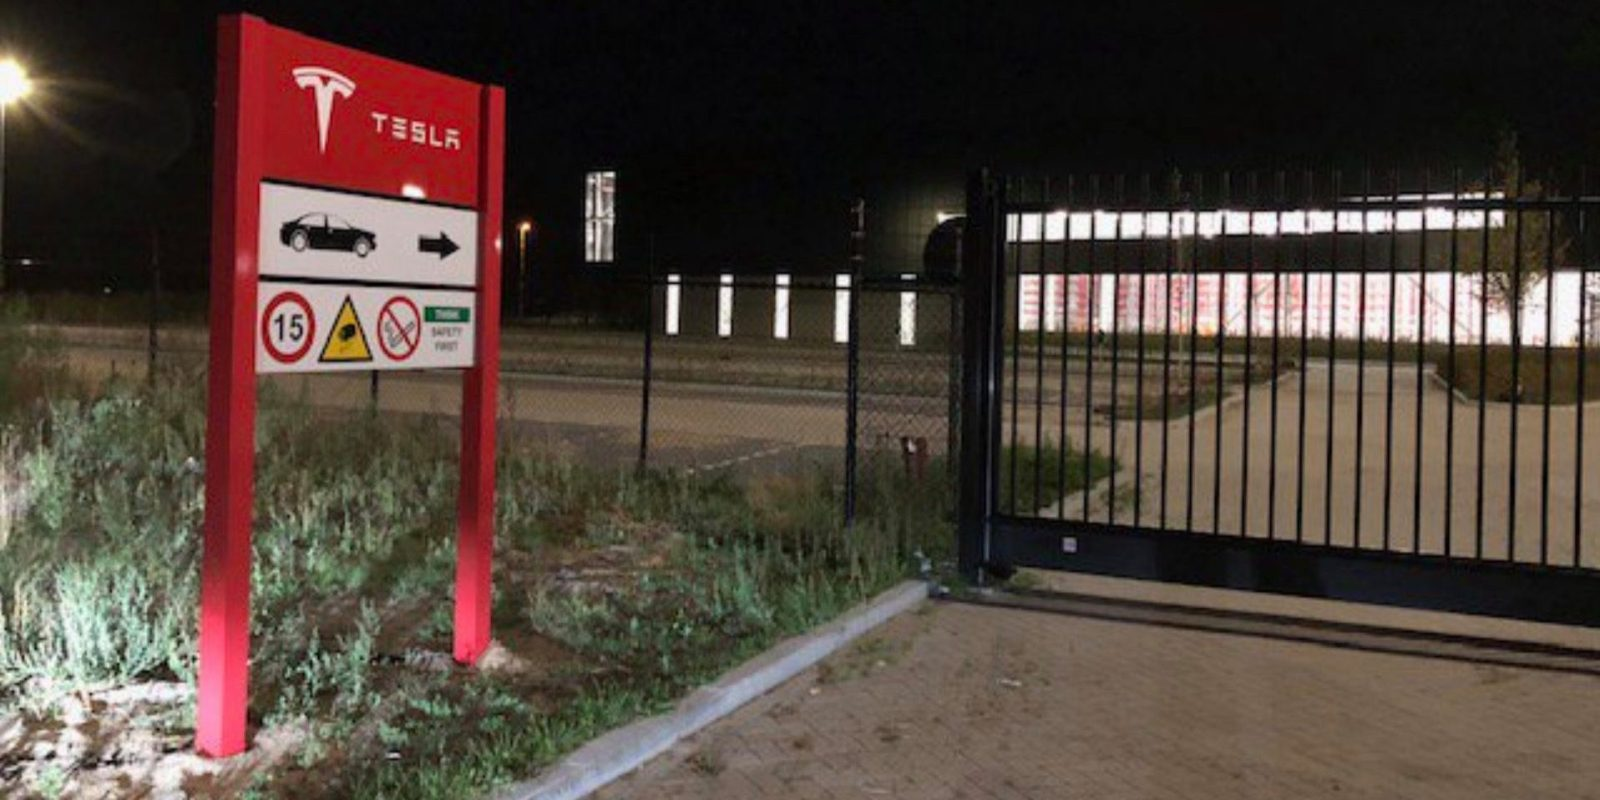 Tesla sets up a new large facility near its European factory